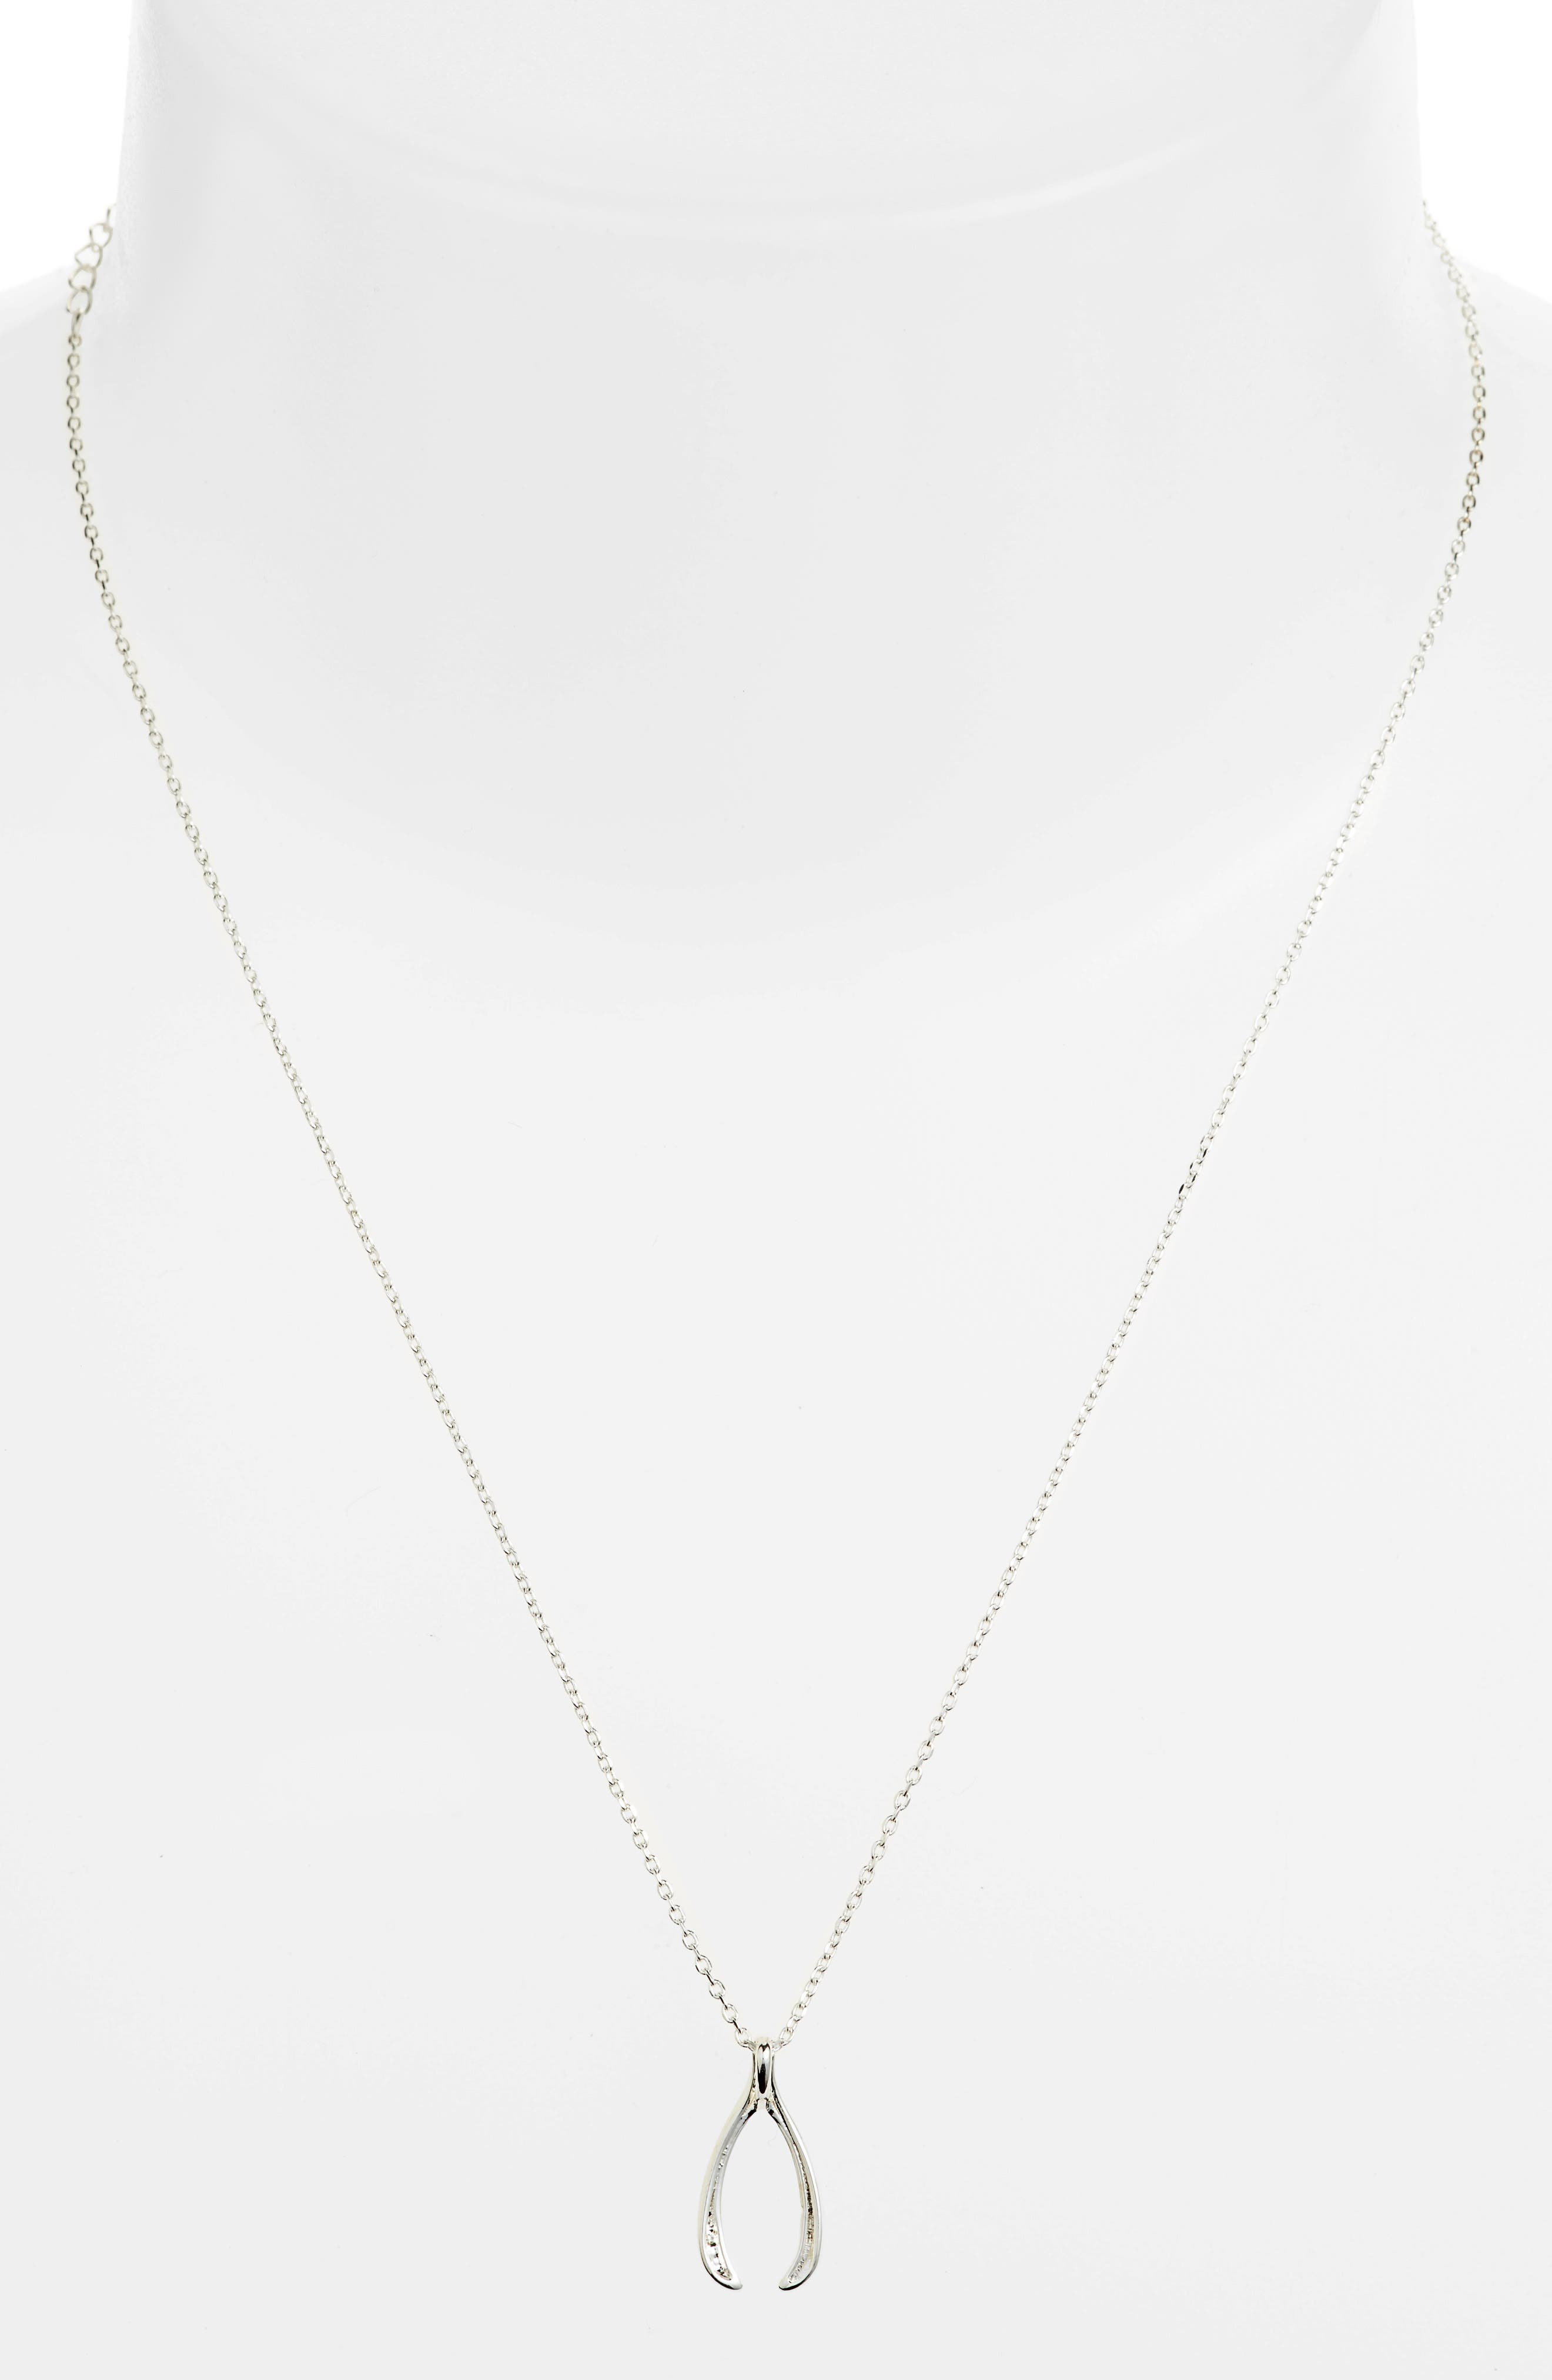 Lucky Wishbone Necklace,                             Alternate thumbnail 2, color,                             040